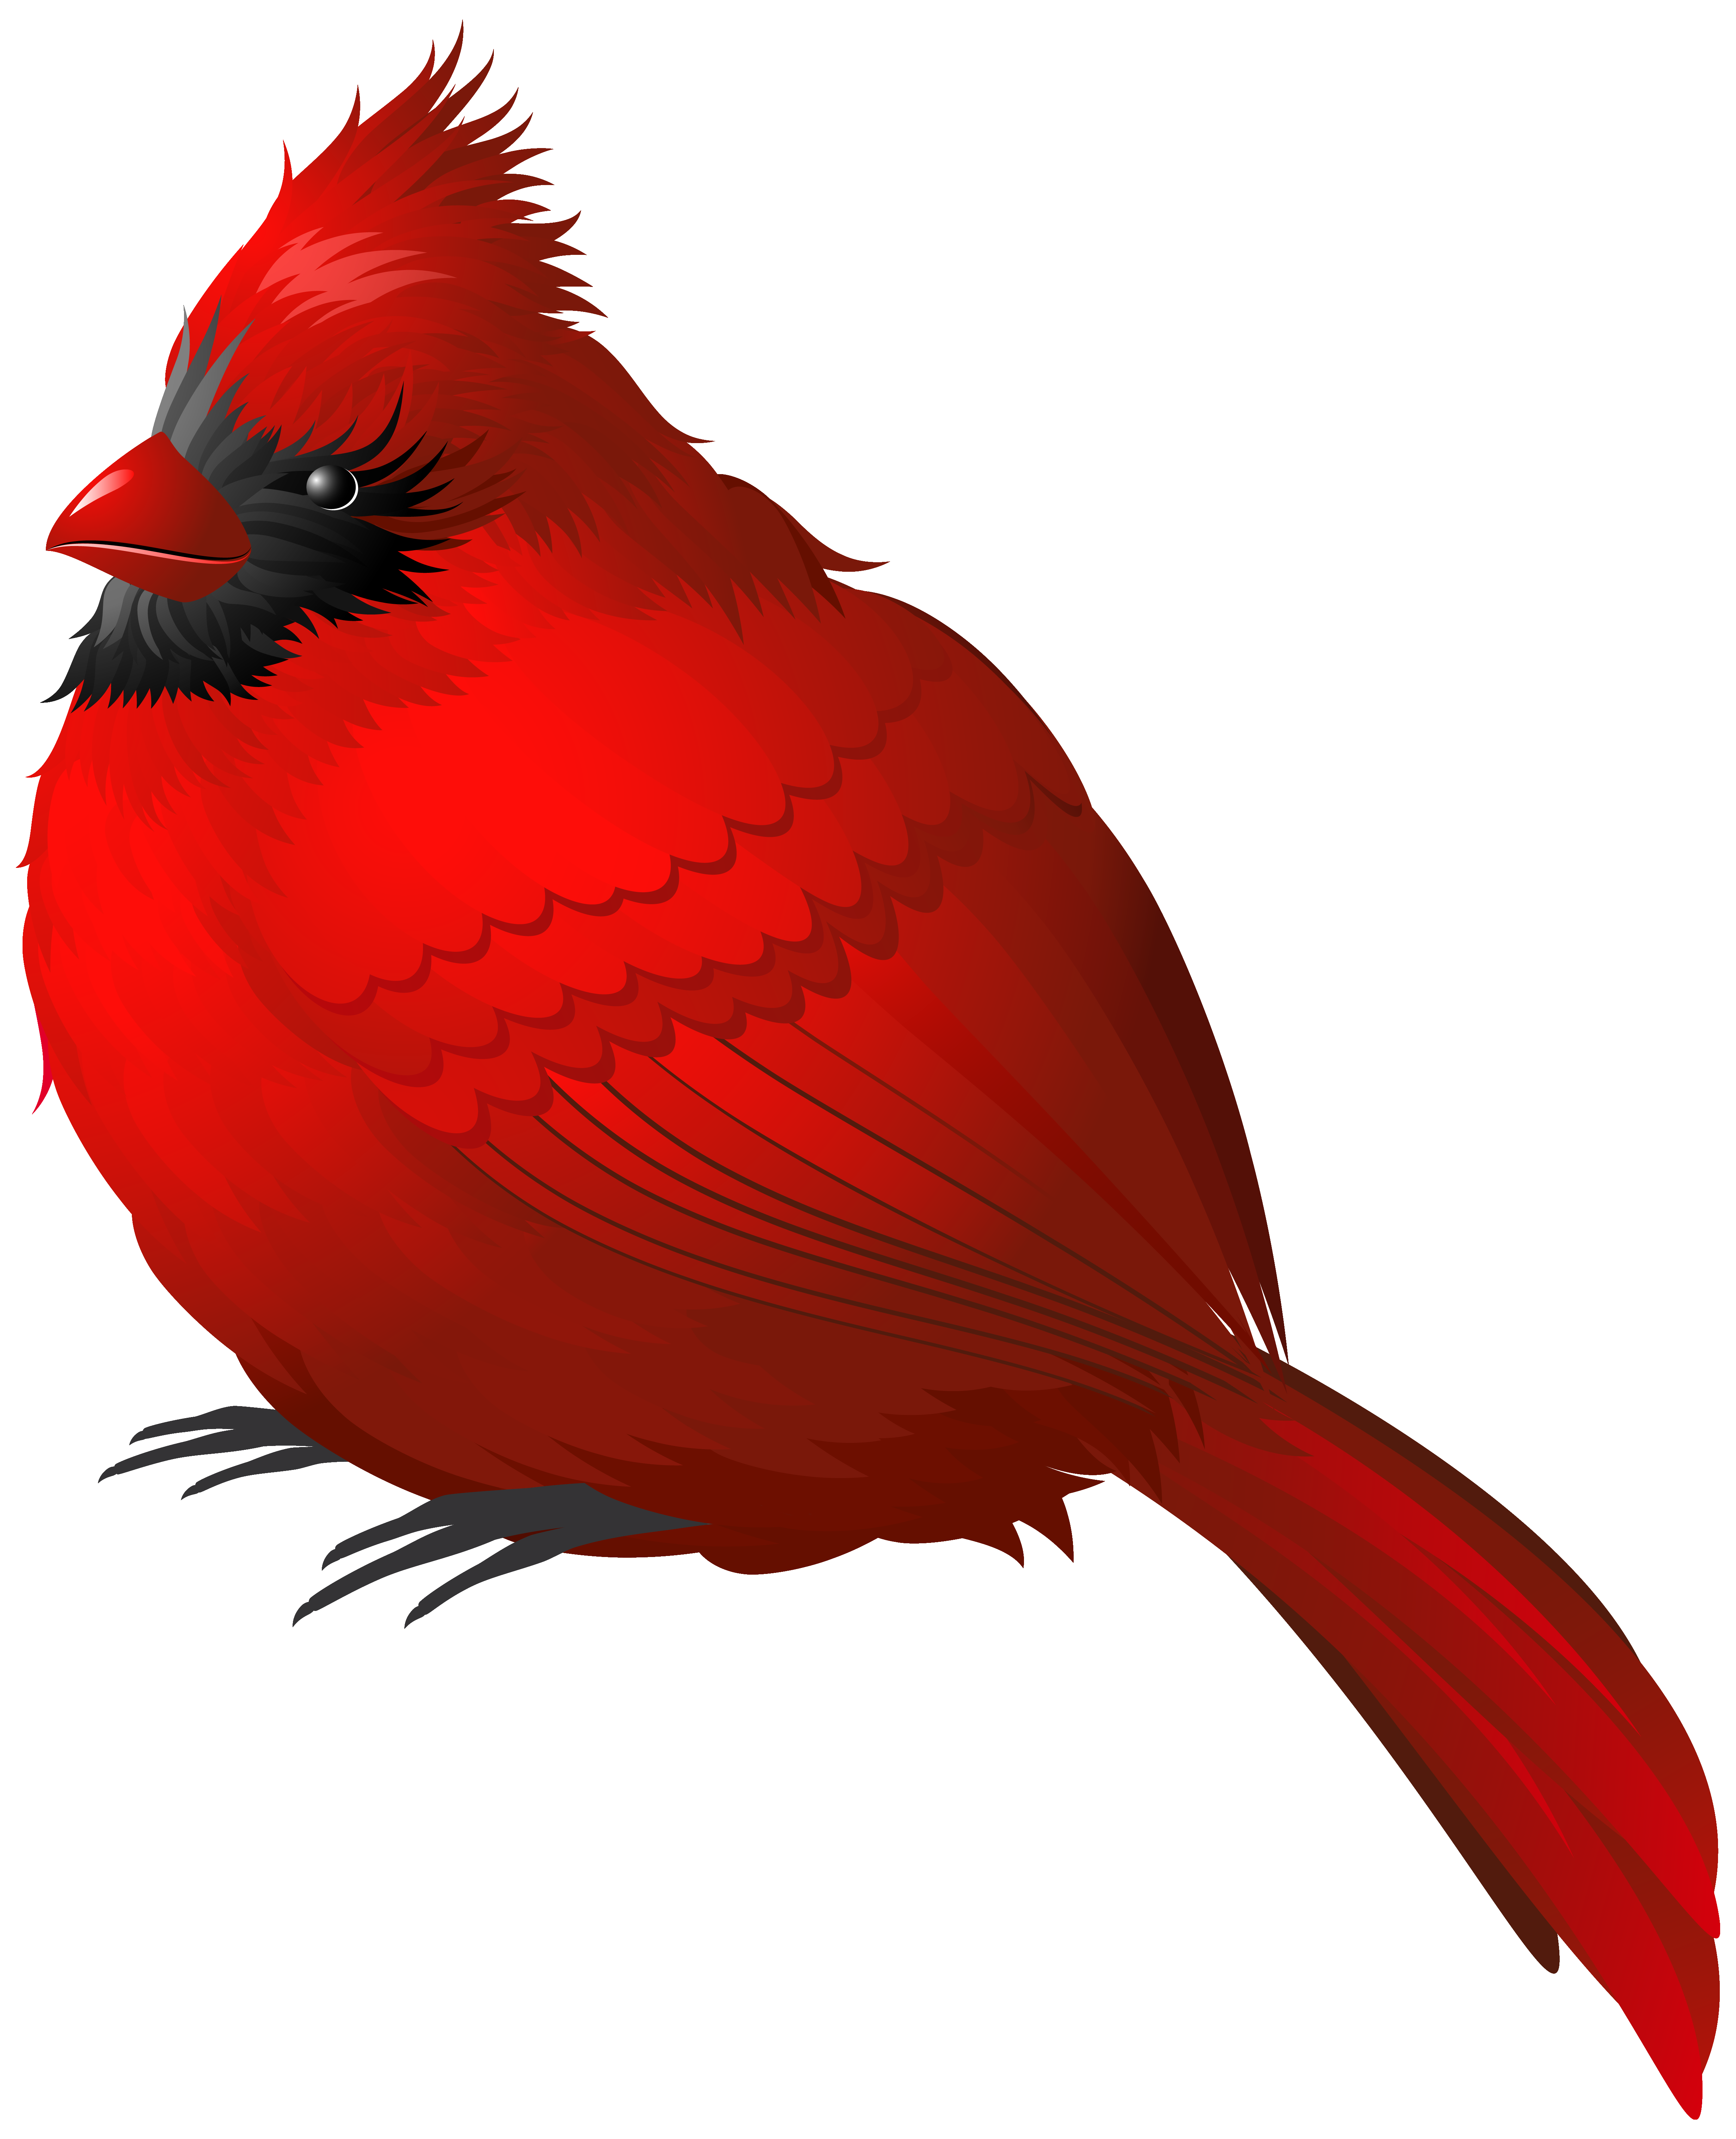 Red Winter Bird PNG Clipart Image.